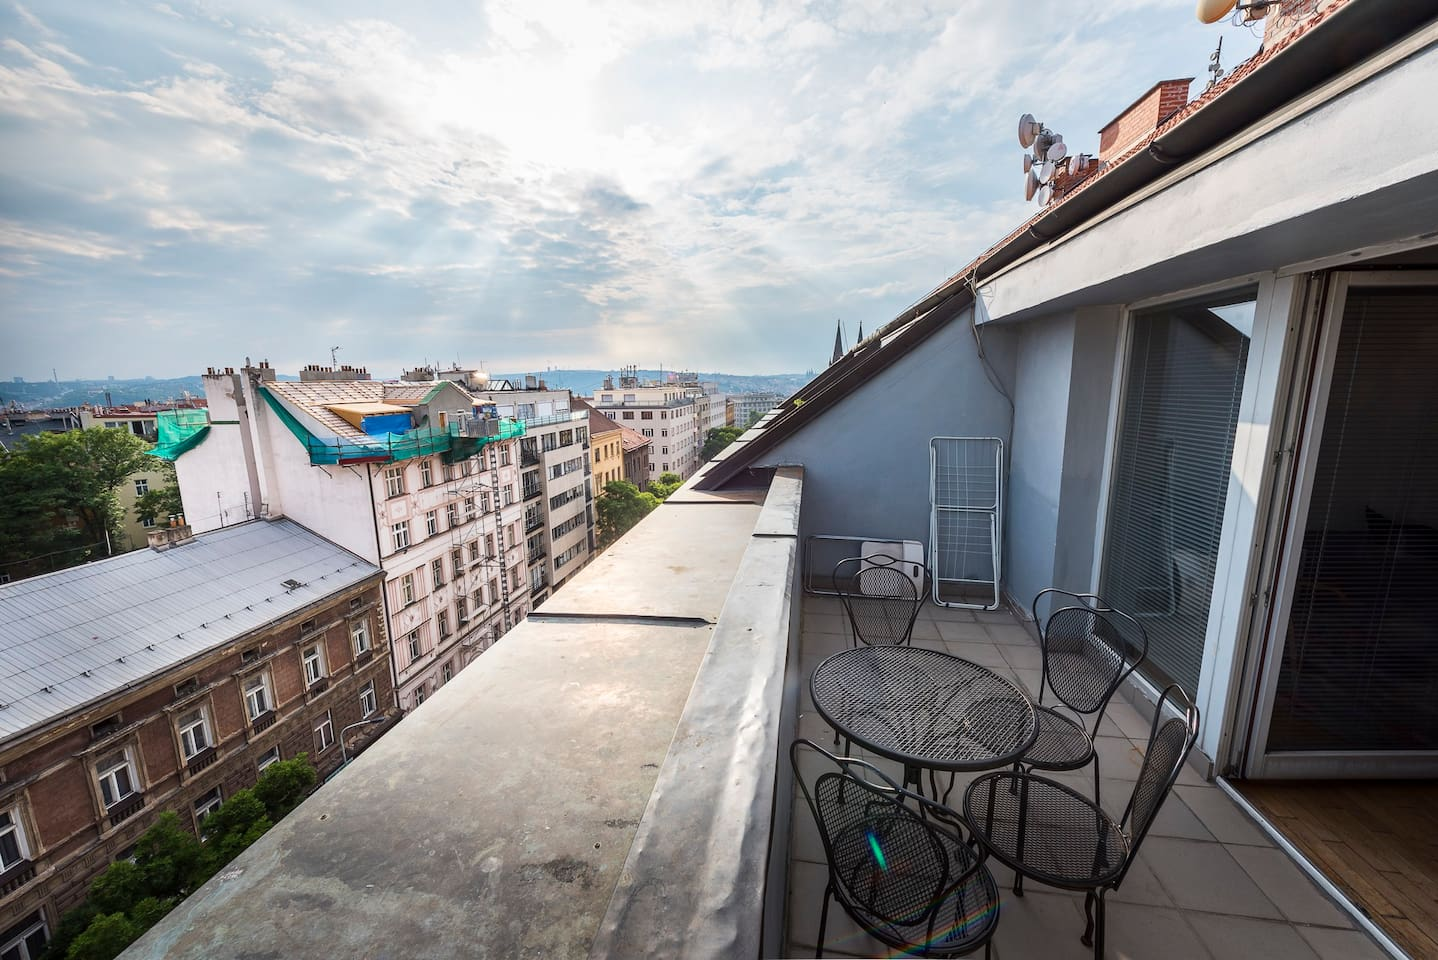 View from the terrace, Prague castle in the background